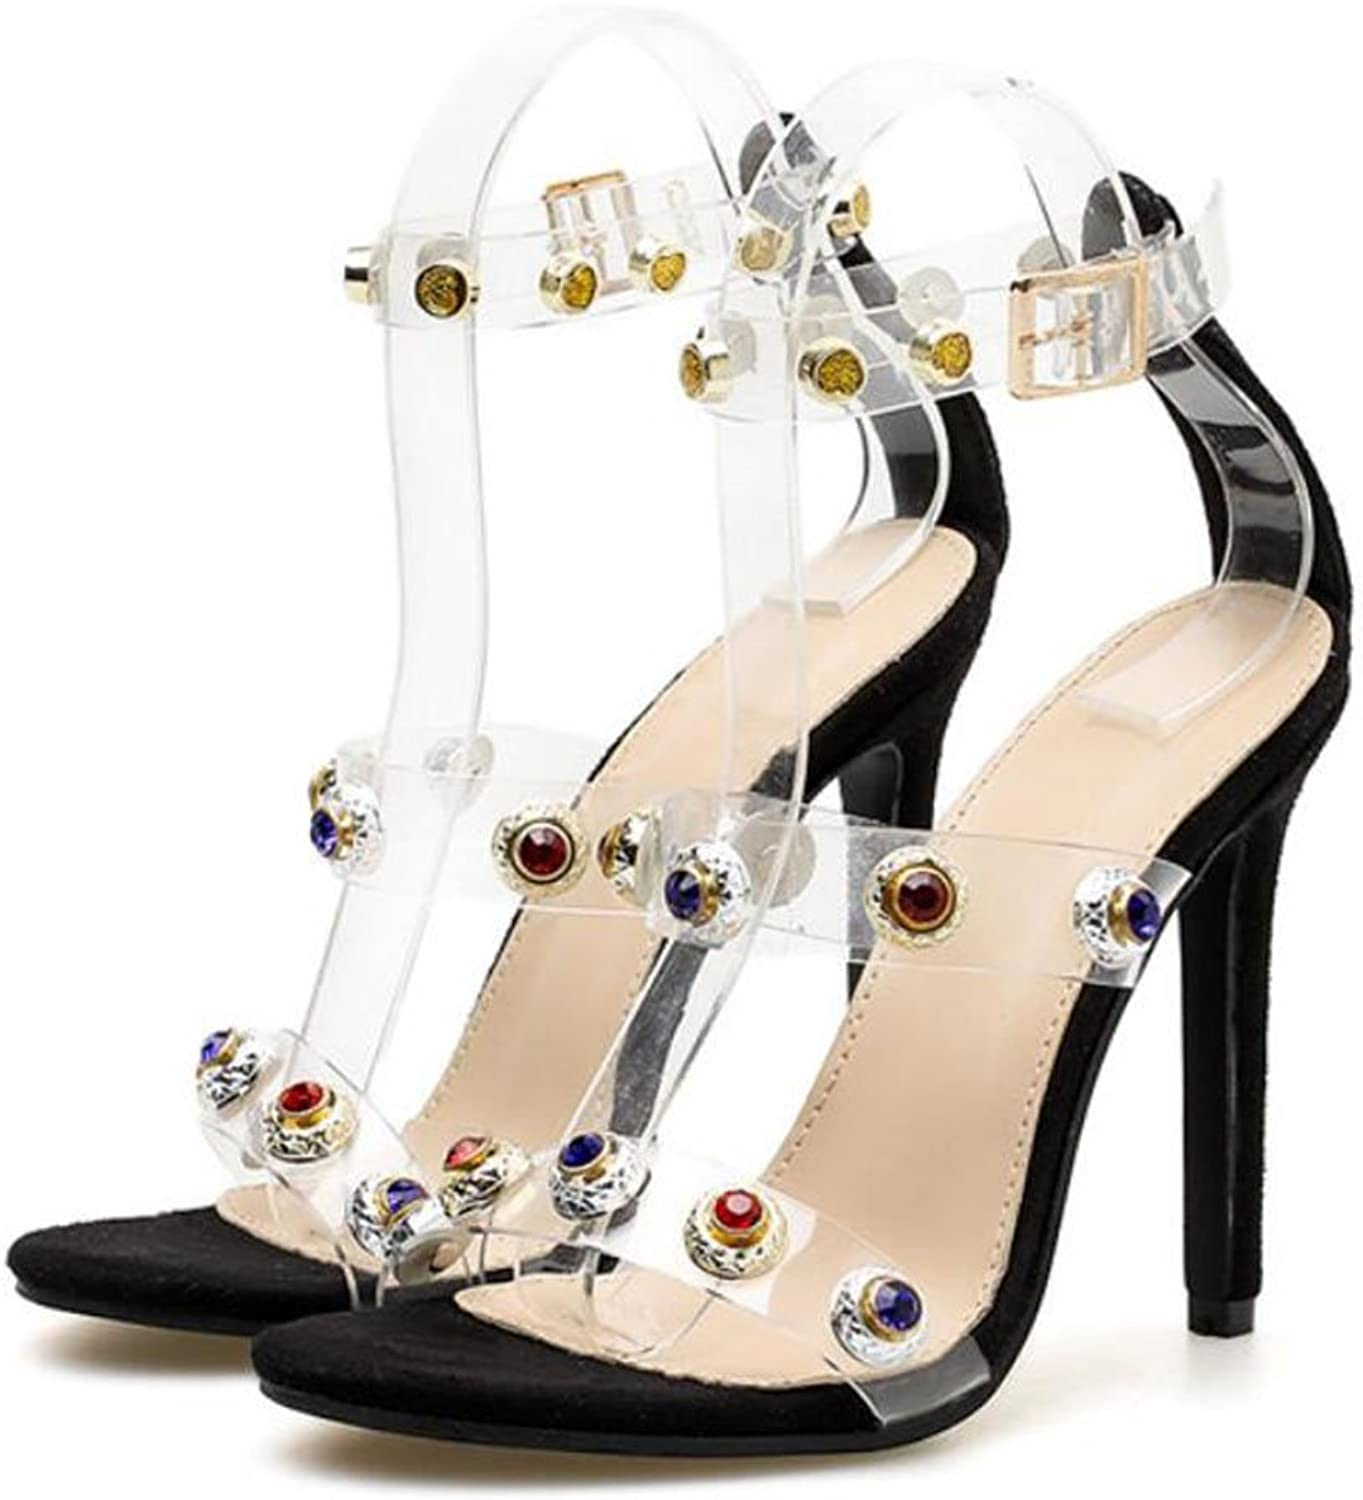 LZWSMGS Women's shoes High Heel Court shoes High Heels Summer Transparent color Rhinestone High Heels Work shoes Party Ladies Sandals (color   Black, Size   36 EU)